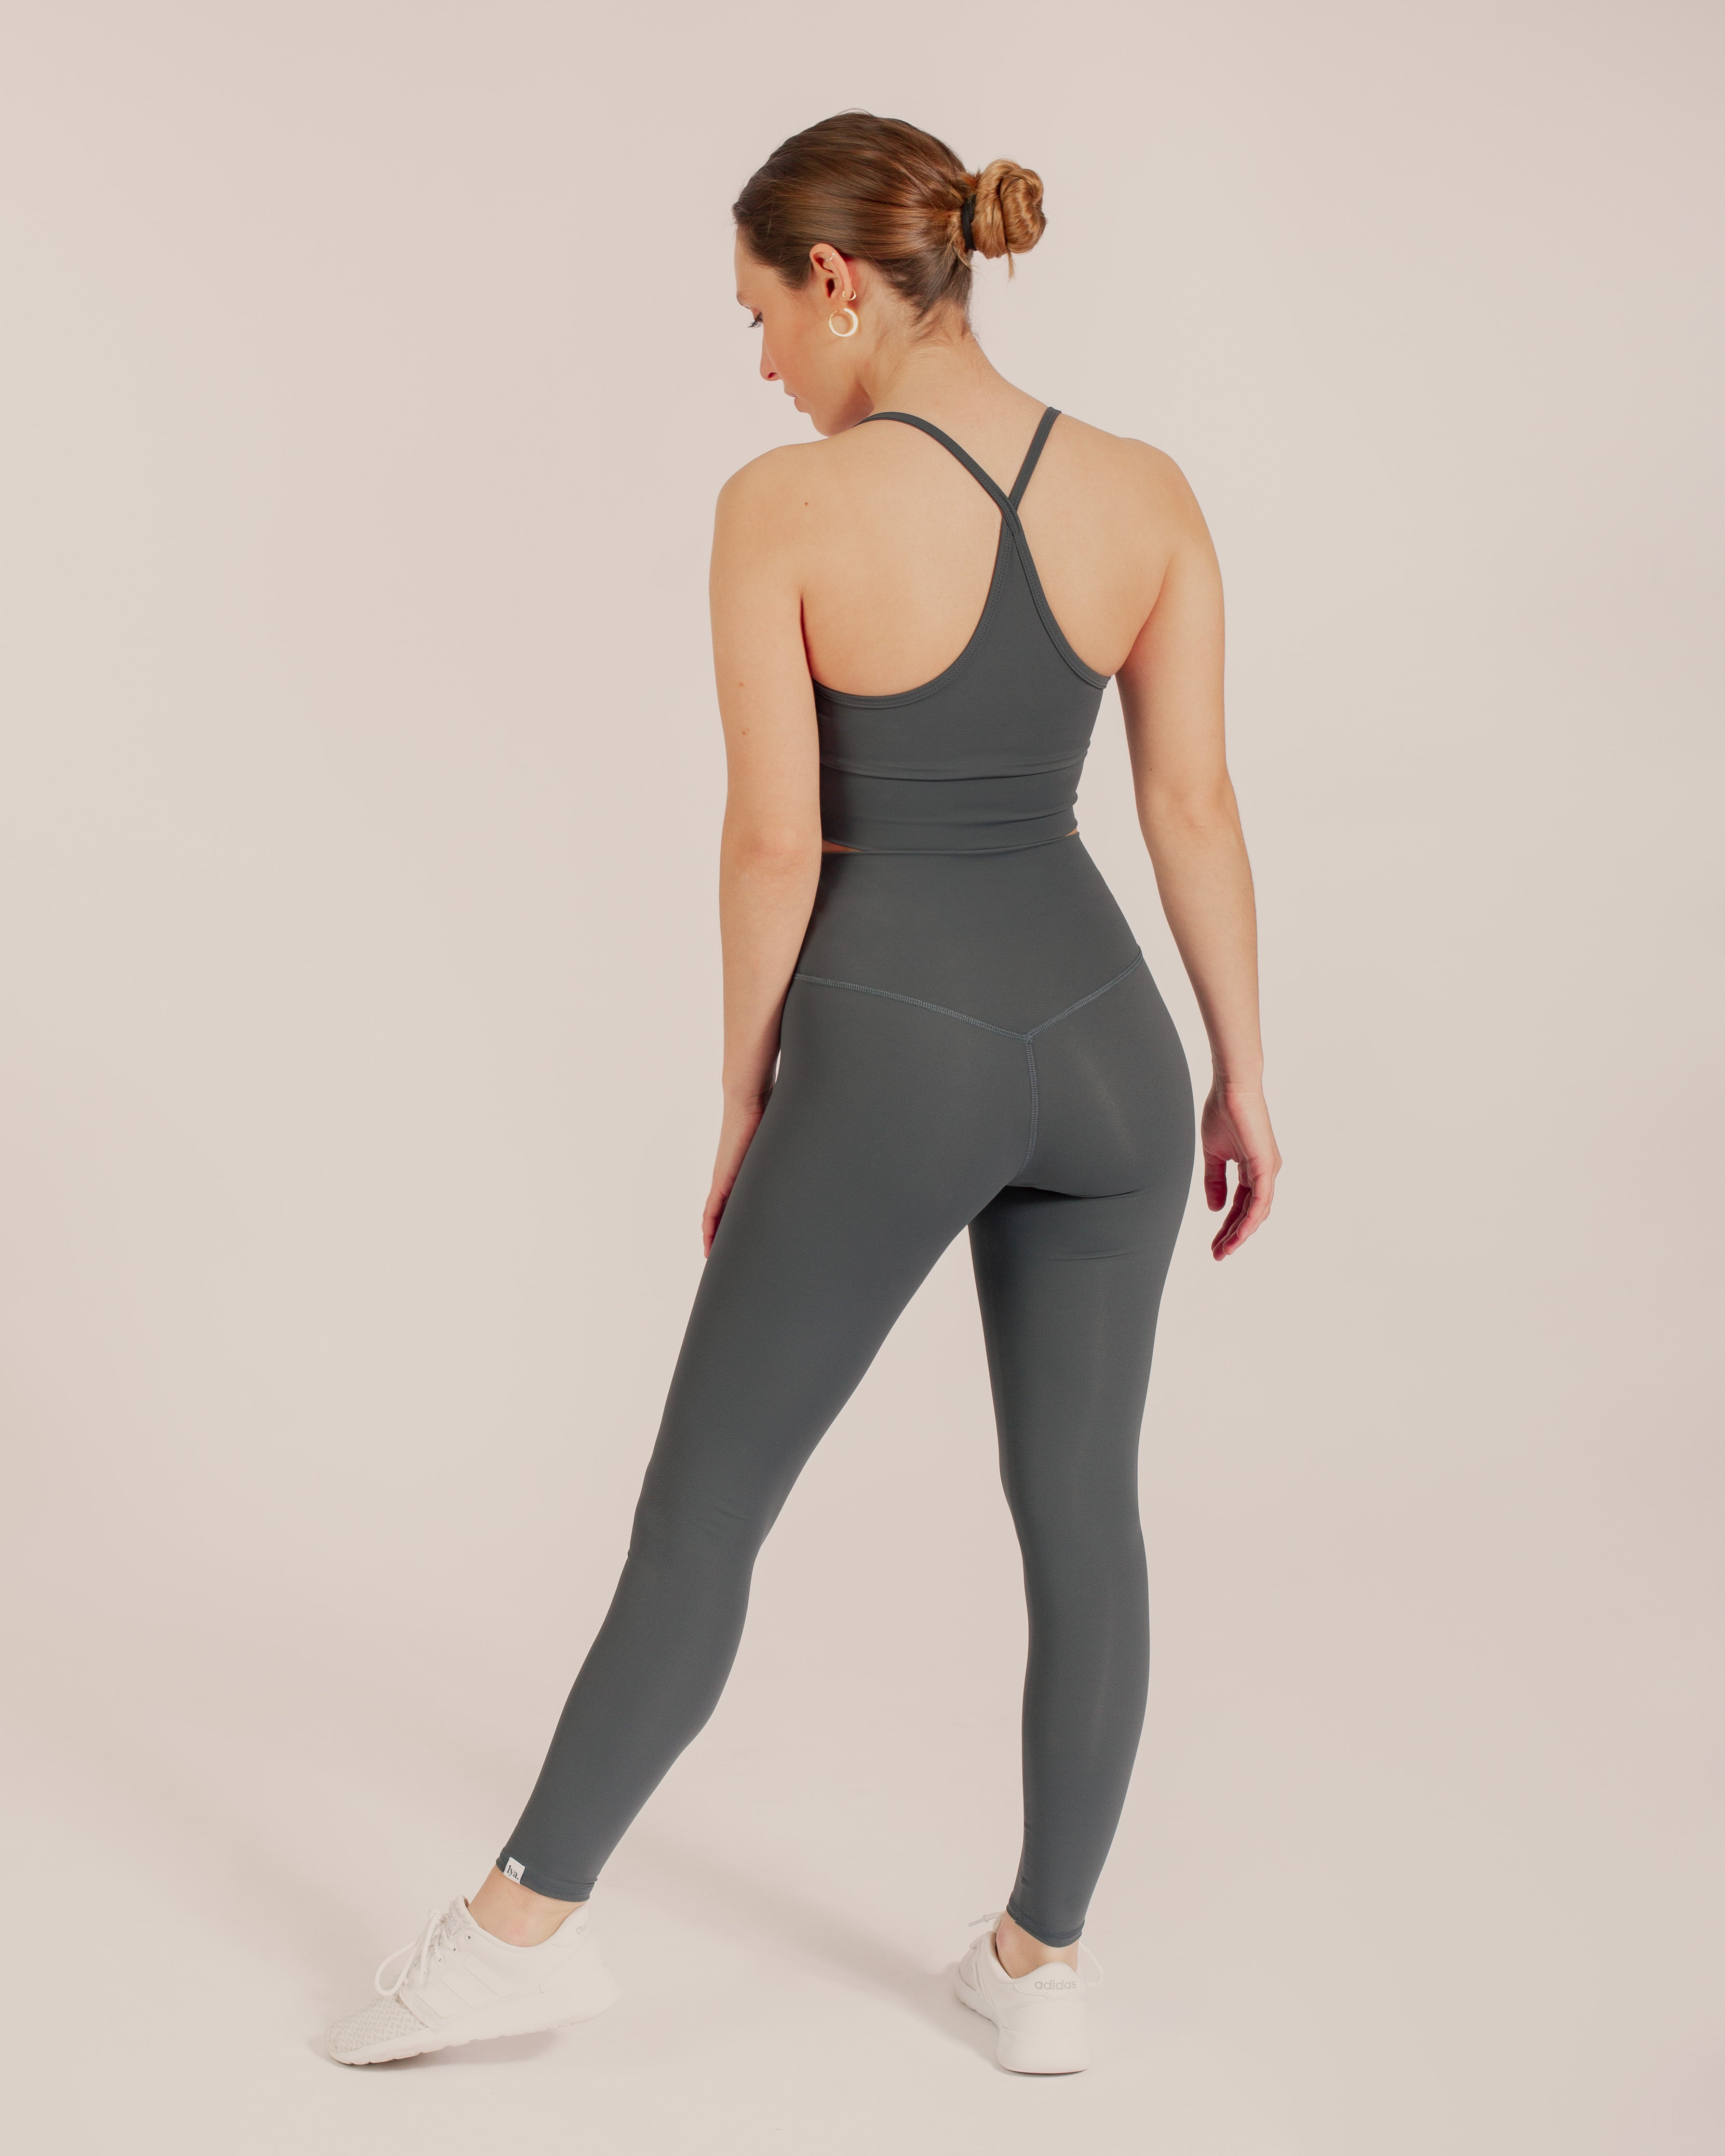 Venus Leggings - Space Grey